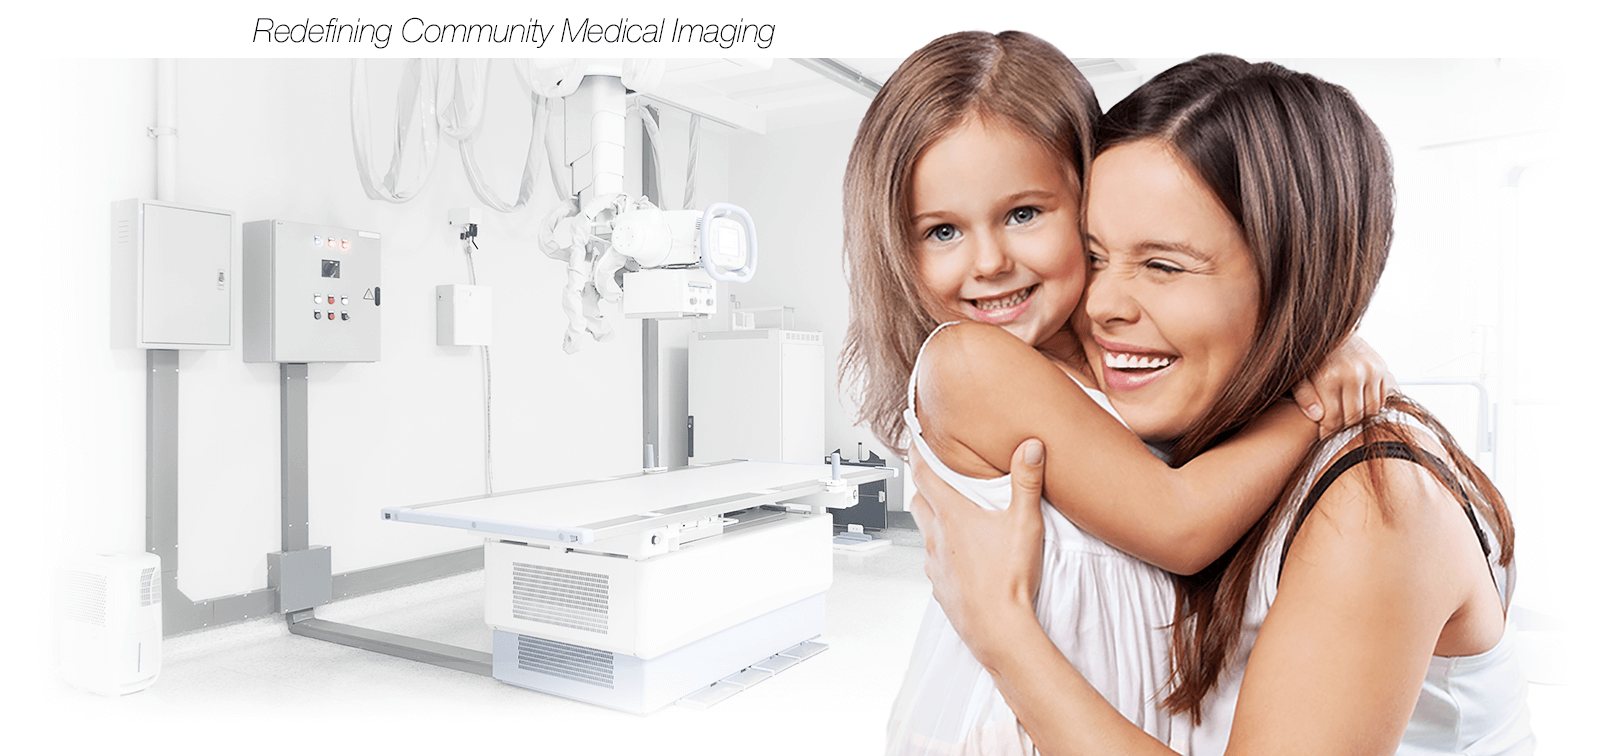 Redefining Community Medical Imaging